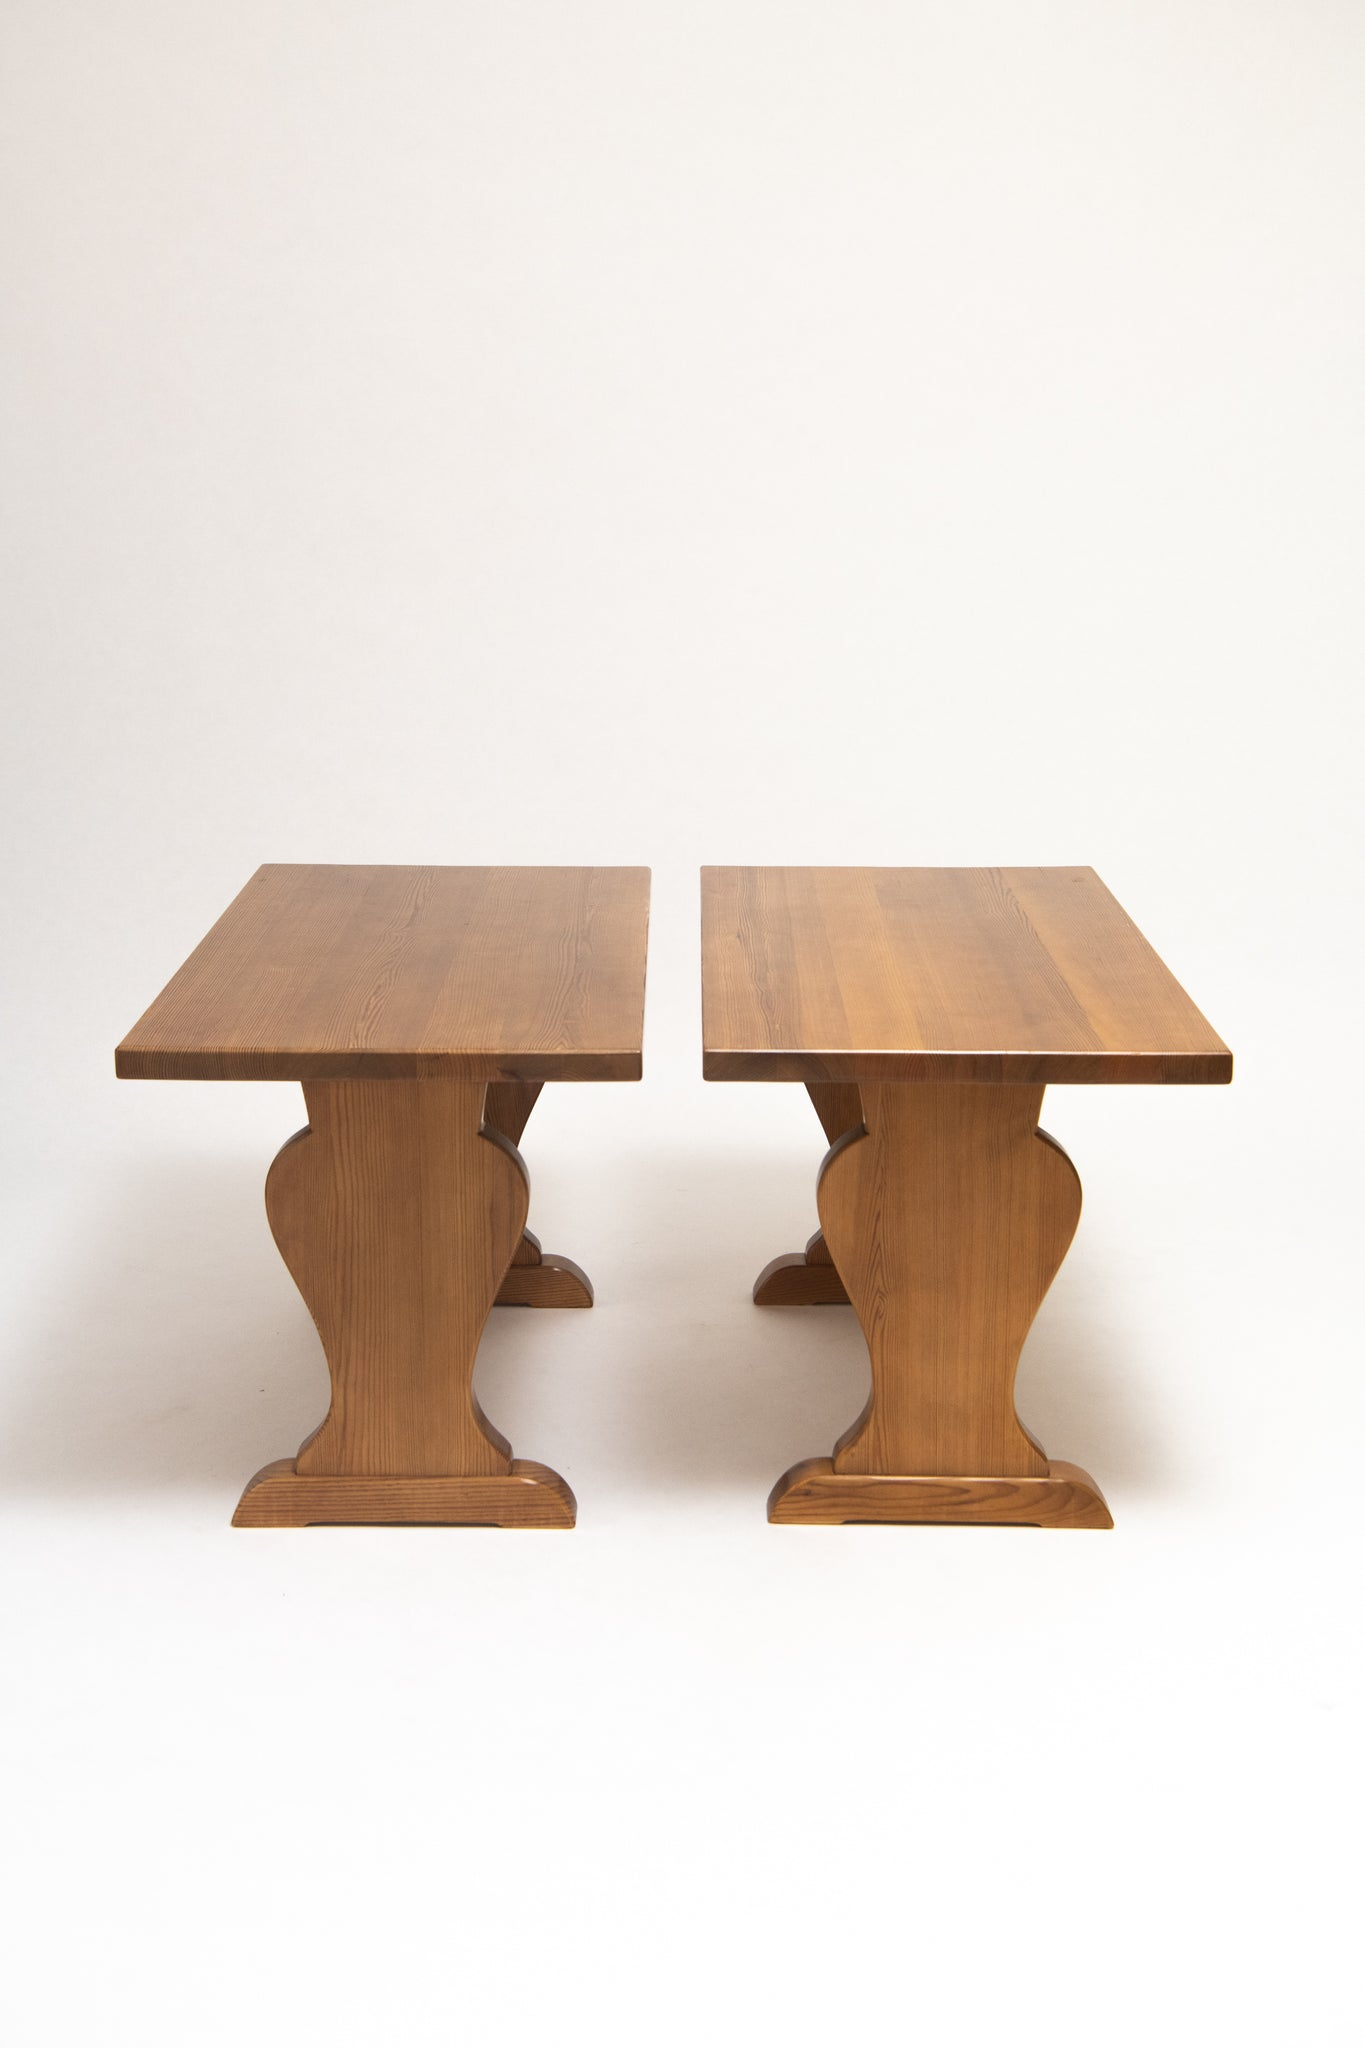 AXEL EINAR HJORTH, PAIR OF TABLES, C. 1932